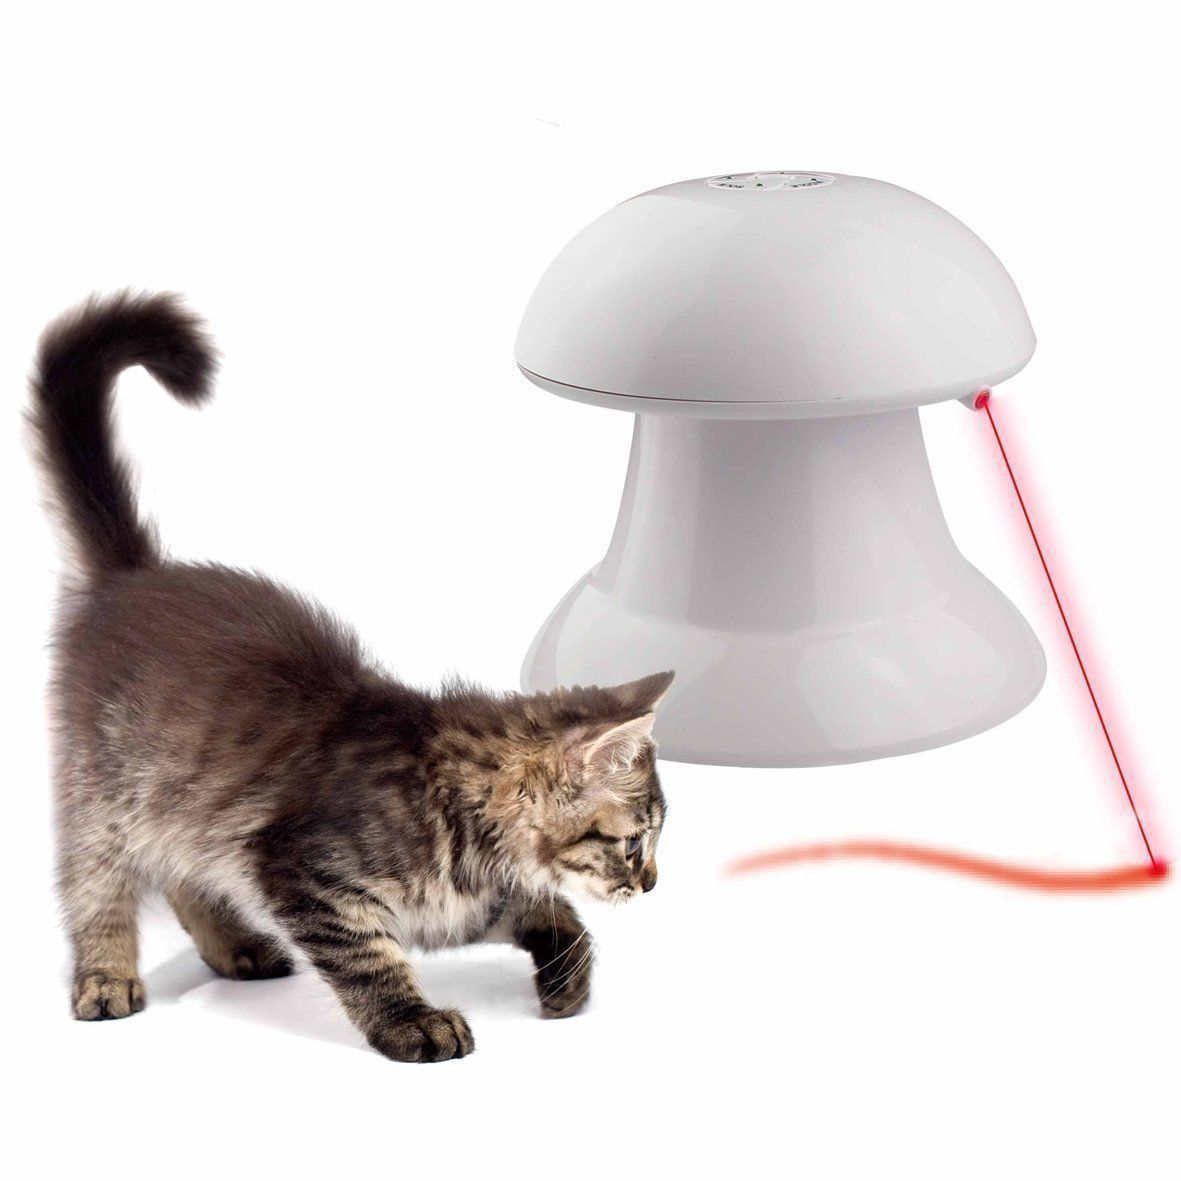 Food Dispensing Item For Cats Aus